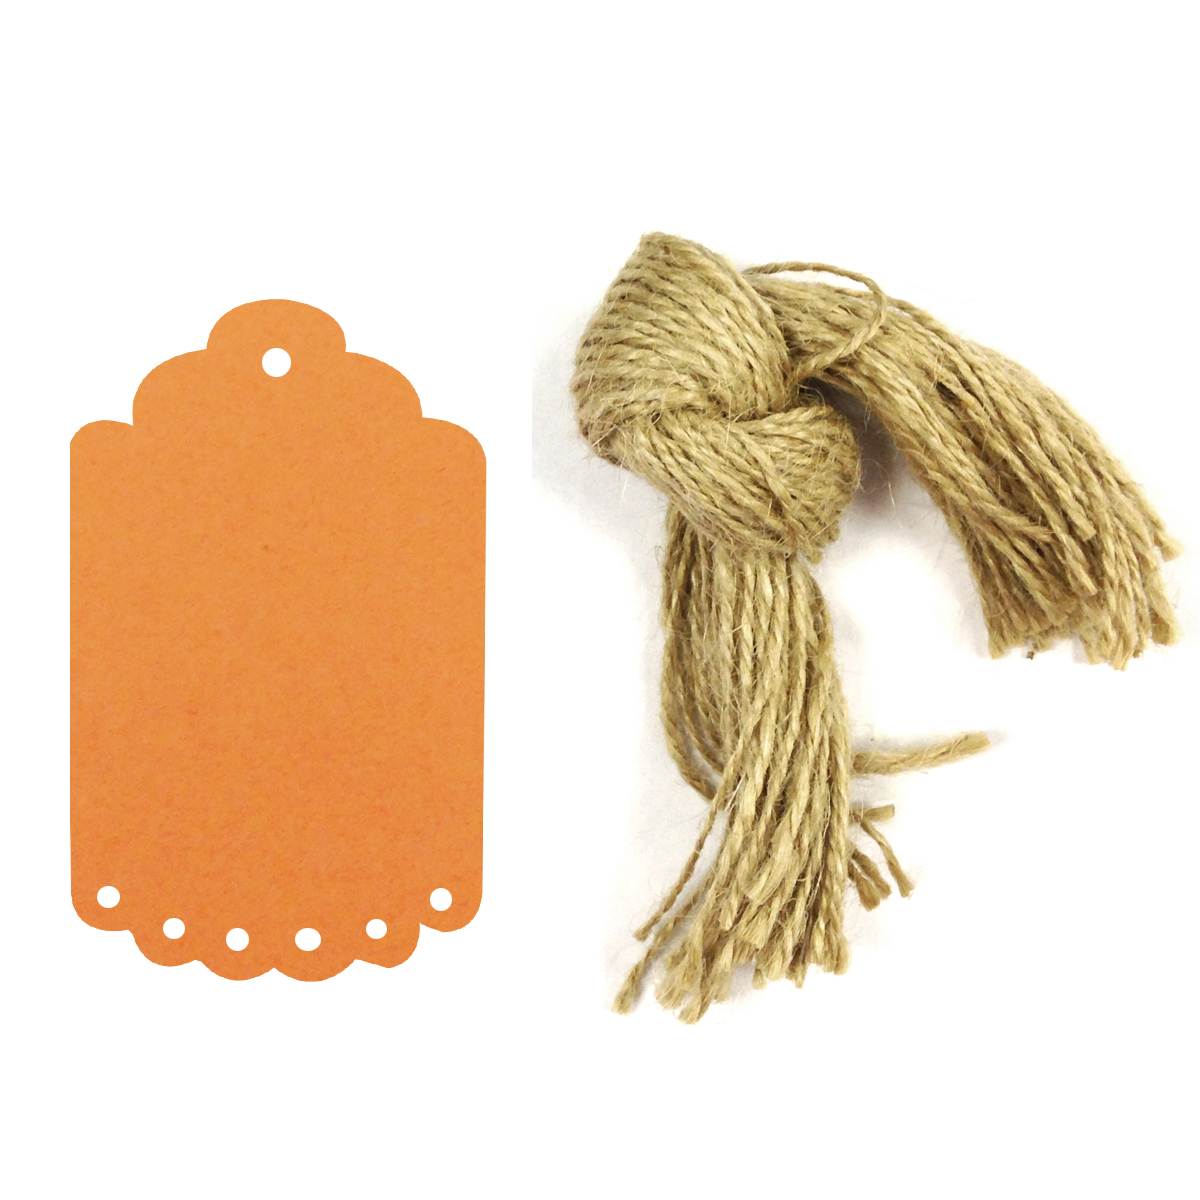 Wrapables® 50 Gift Tags/Kraft Hang Tags with Free Cut Strings for Gifts, Crafts & Price Tags, Small Scalloped Edge (Orange)